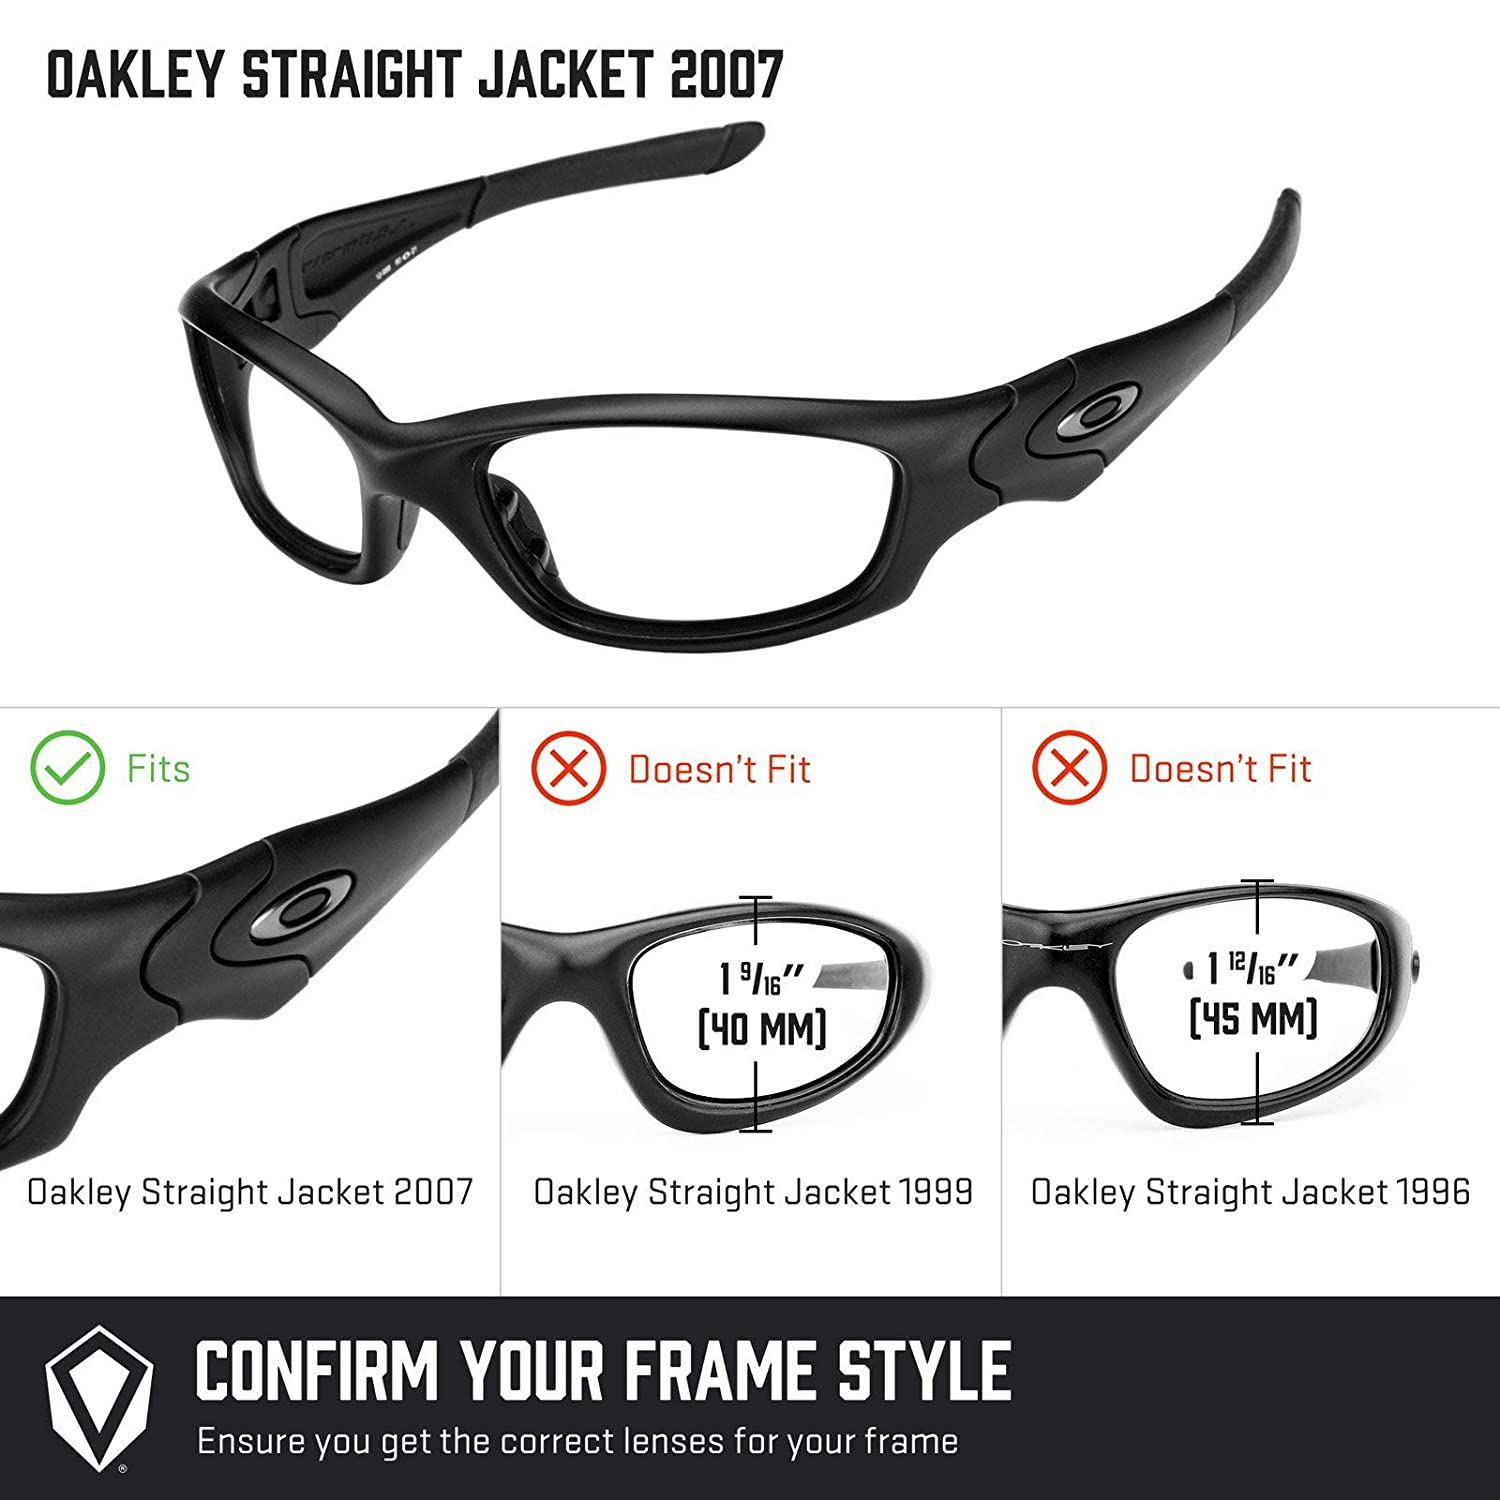 cfd2c3a433 Revant MaxGrip Rubber Kit for Oakley Straight Jacket (2007) - Black at  Amazon Men s Clothing store